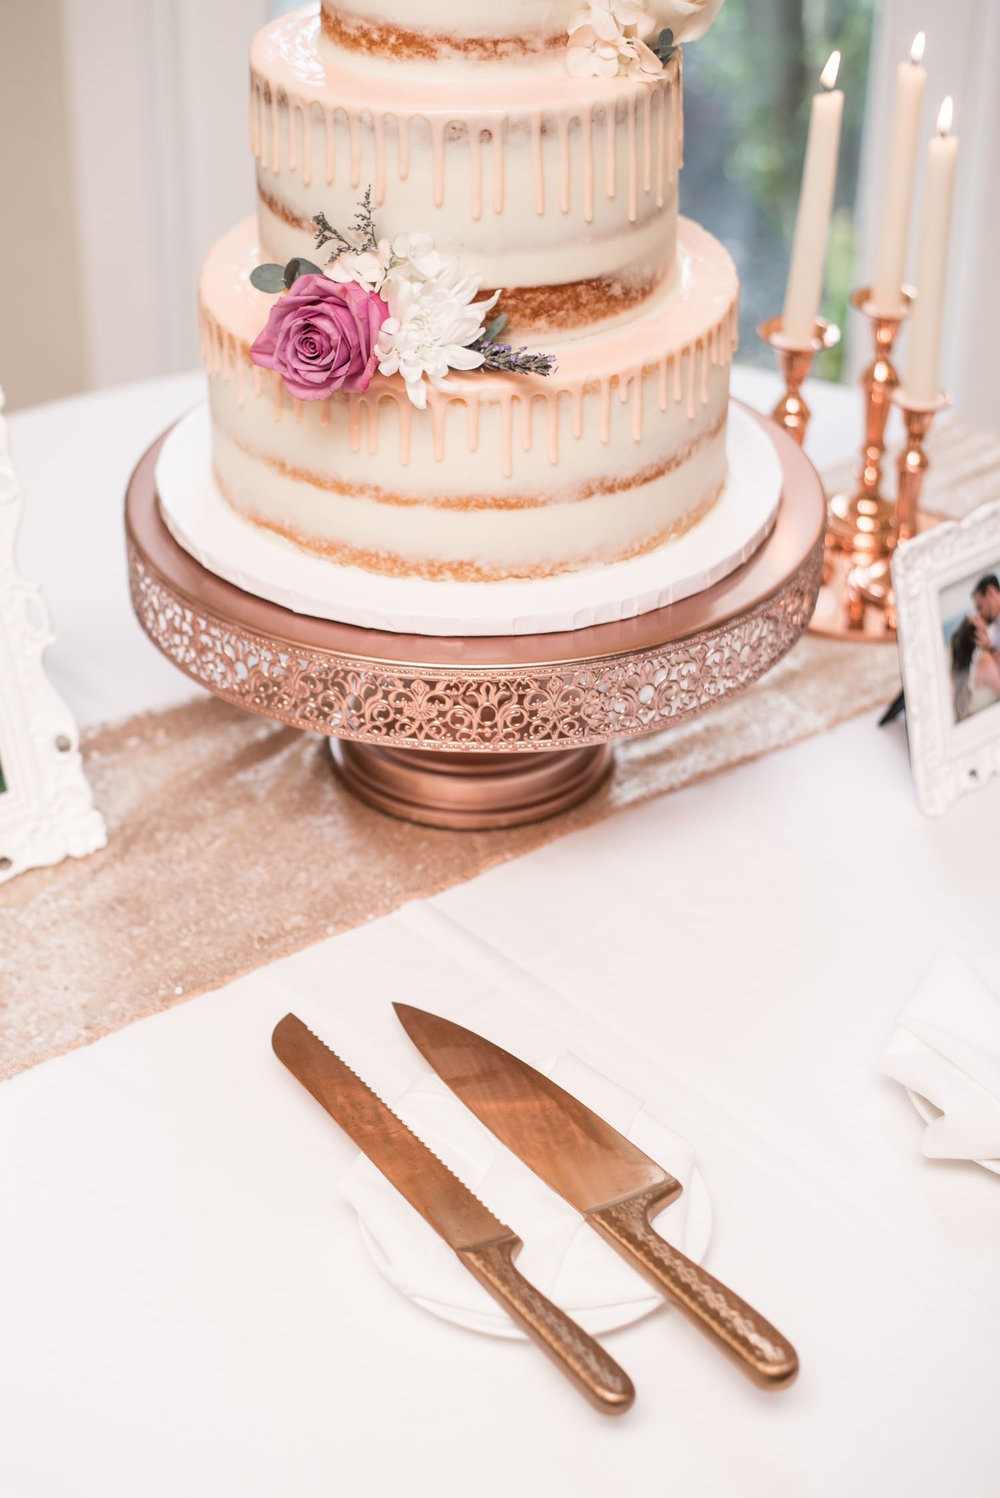 46 rose gold wedding cake knife set.jpg